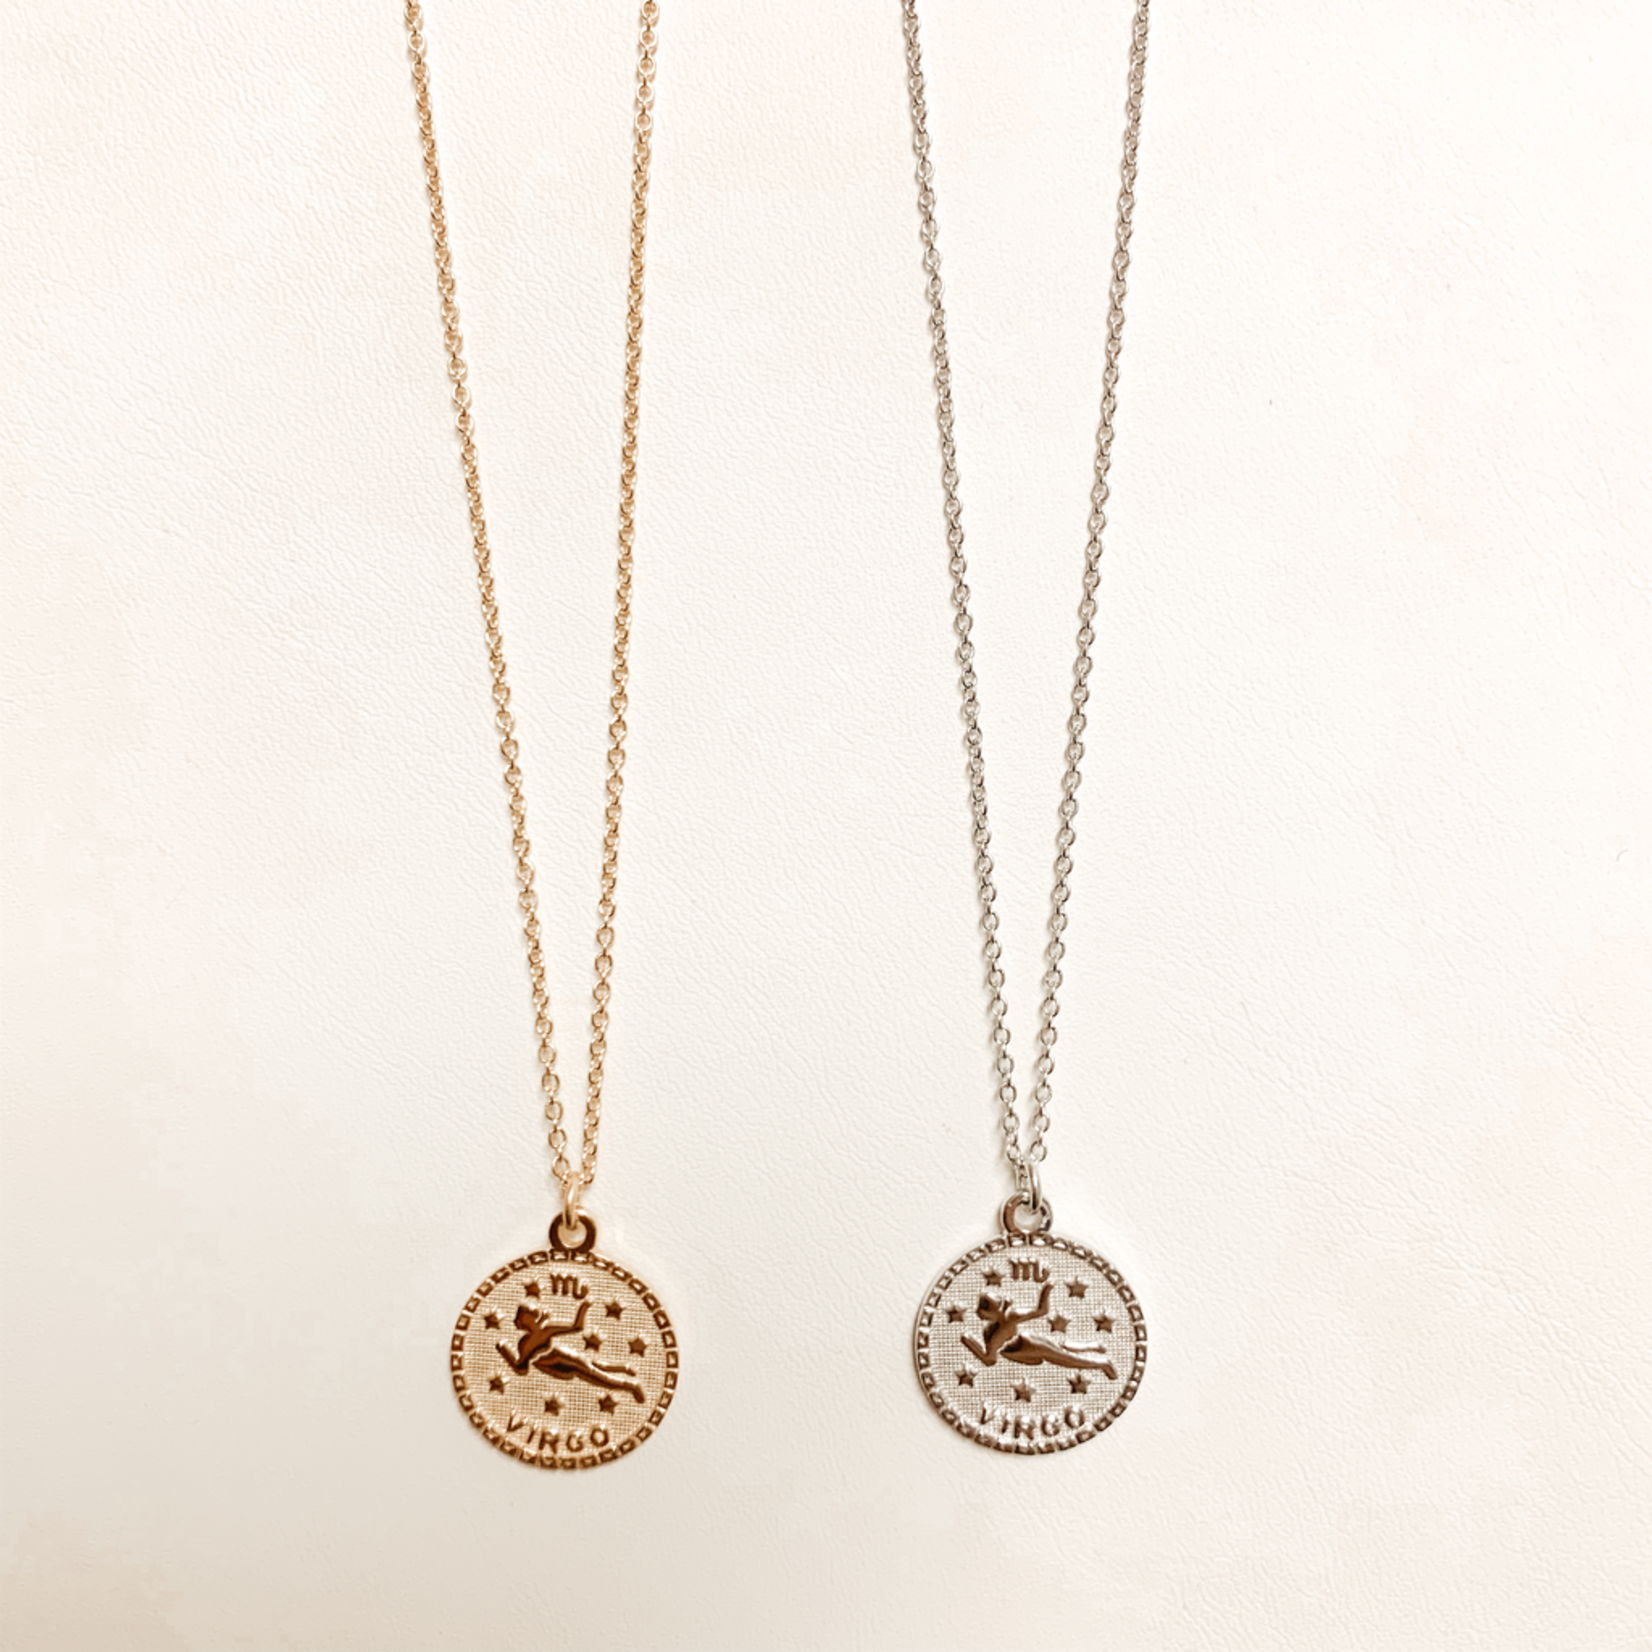 Virgo In the Stars Necklace